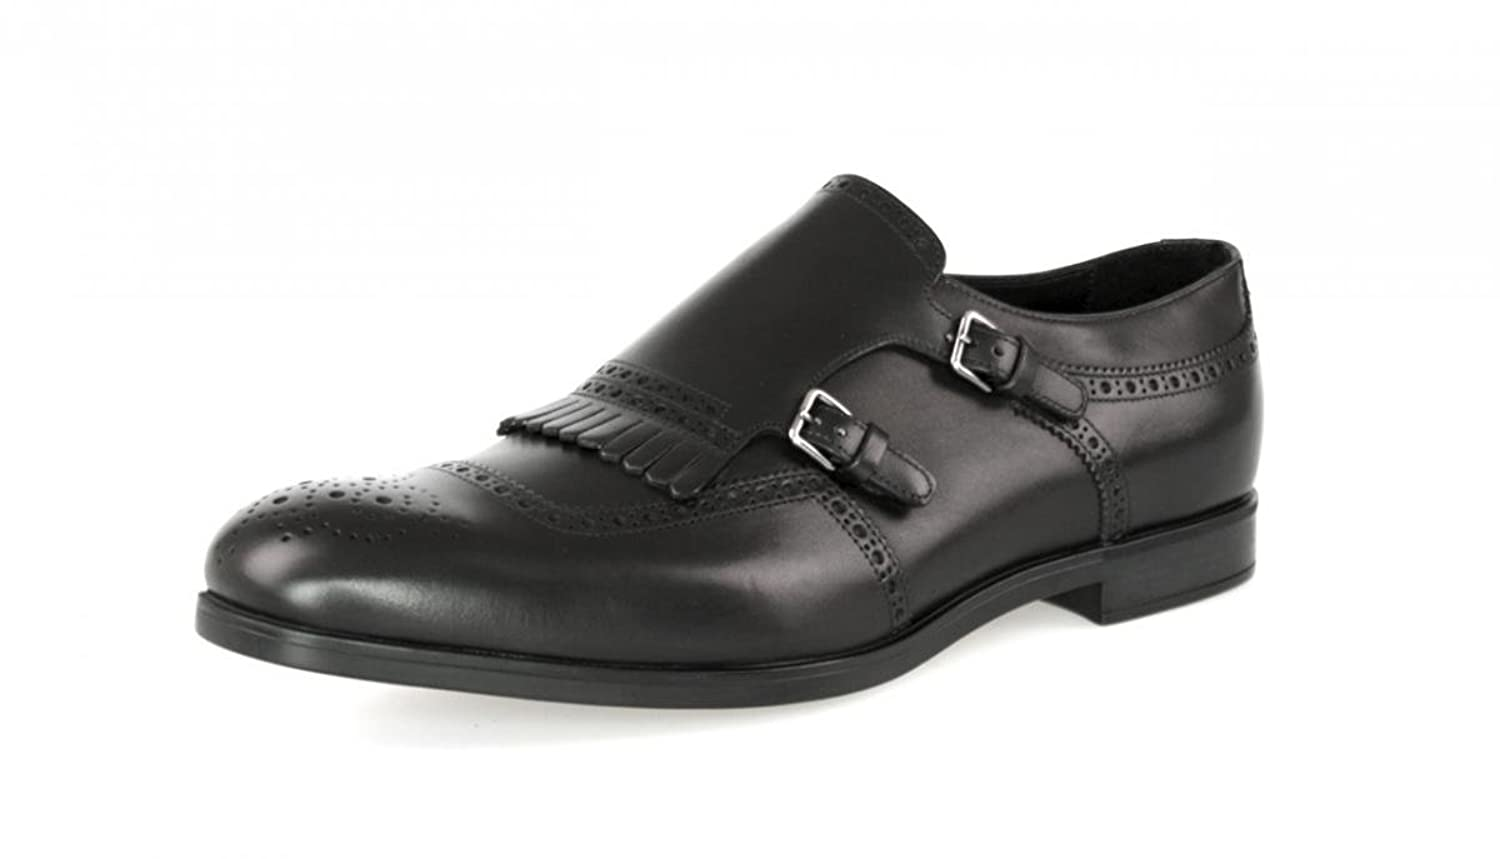 Prada Men's 2OF002 Full Brogue Leather Business Shoes